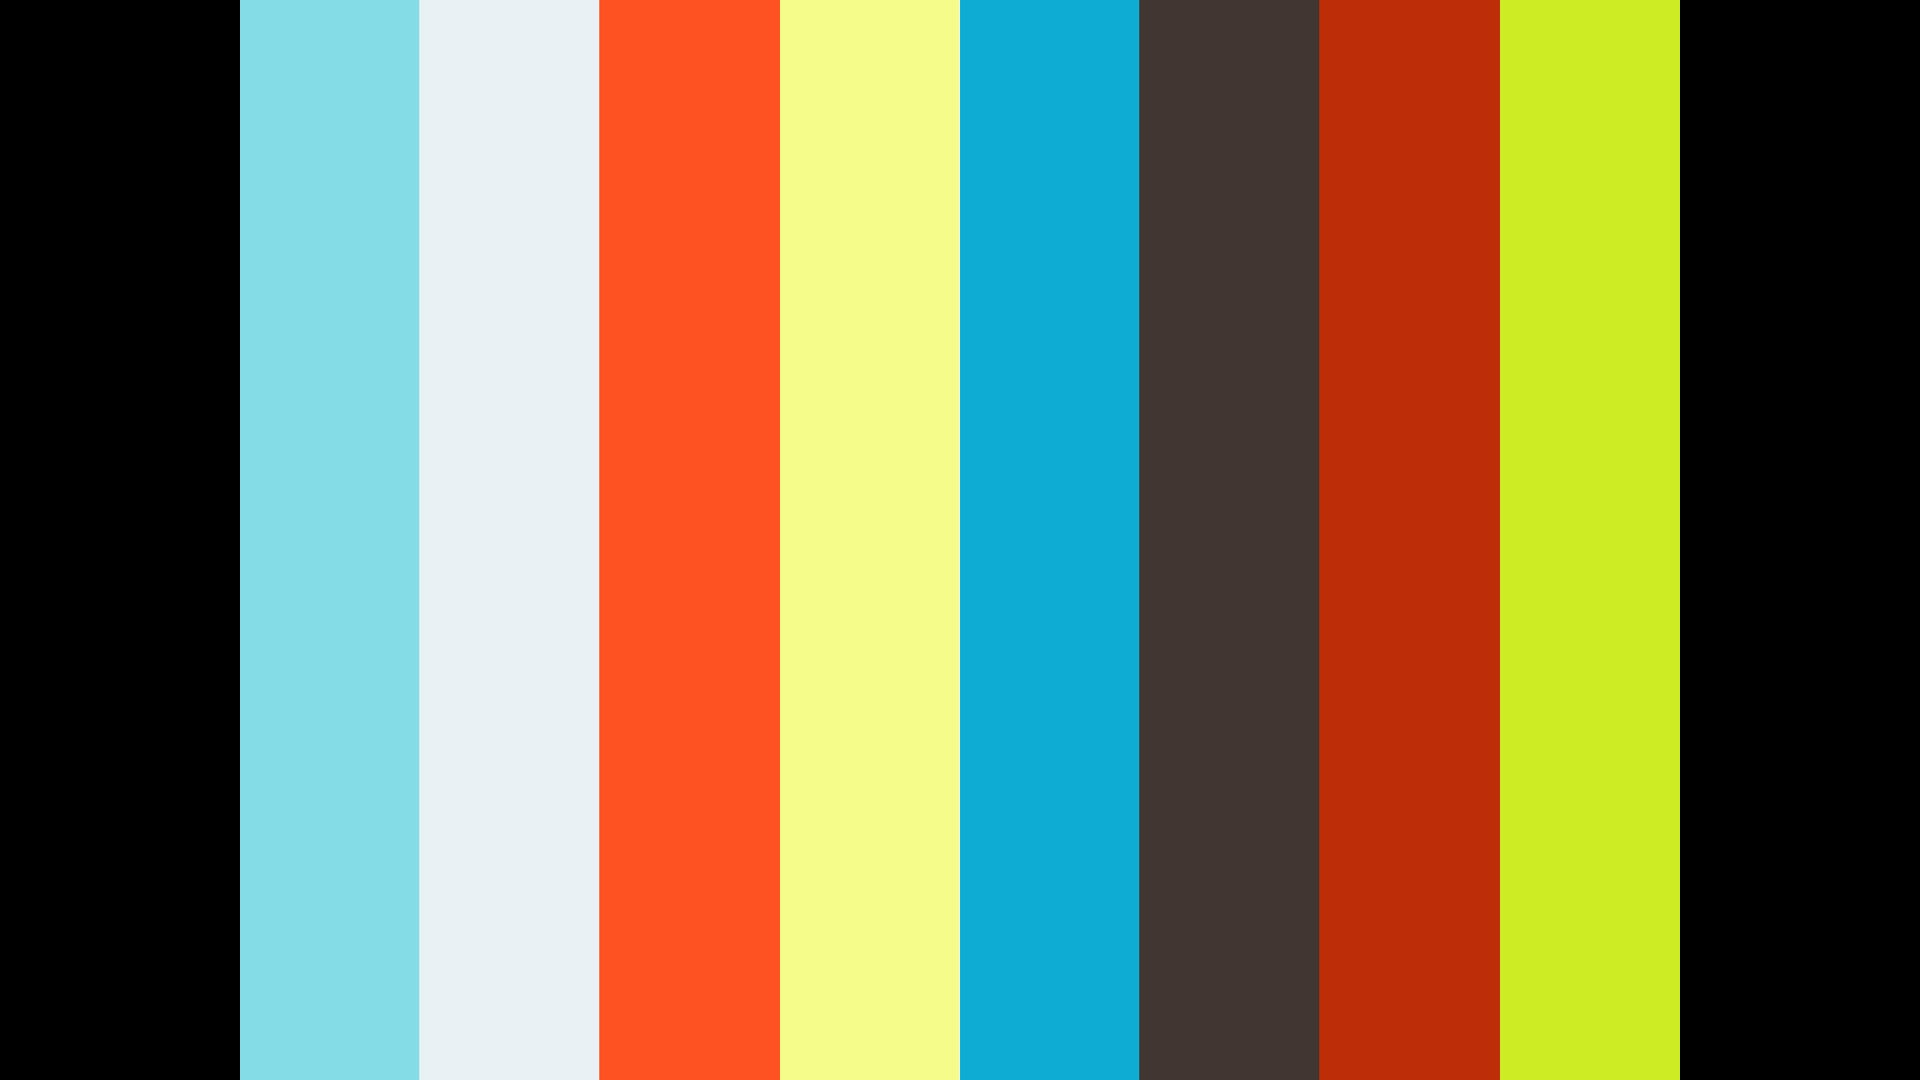 Sven Ruppert – Best Practices With Jfrog Xray